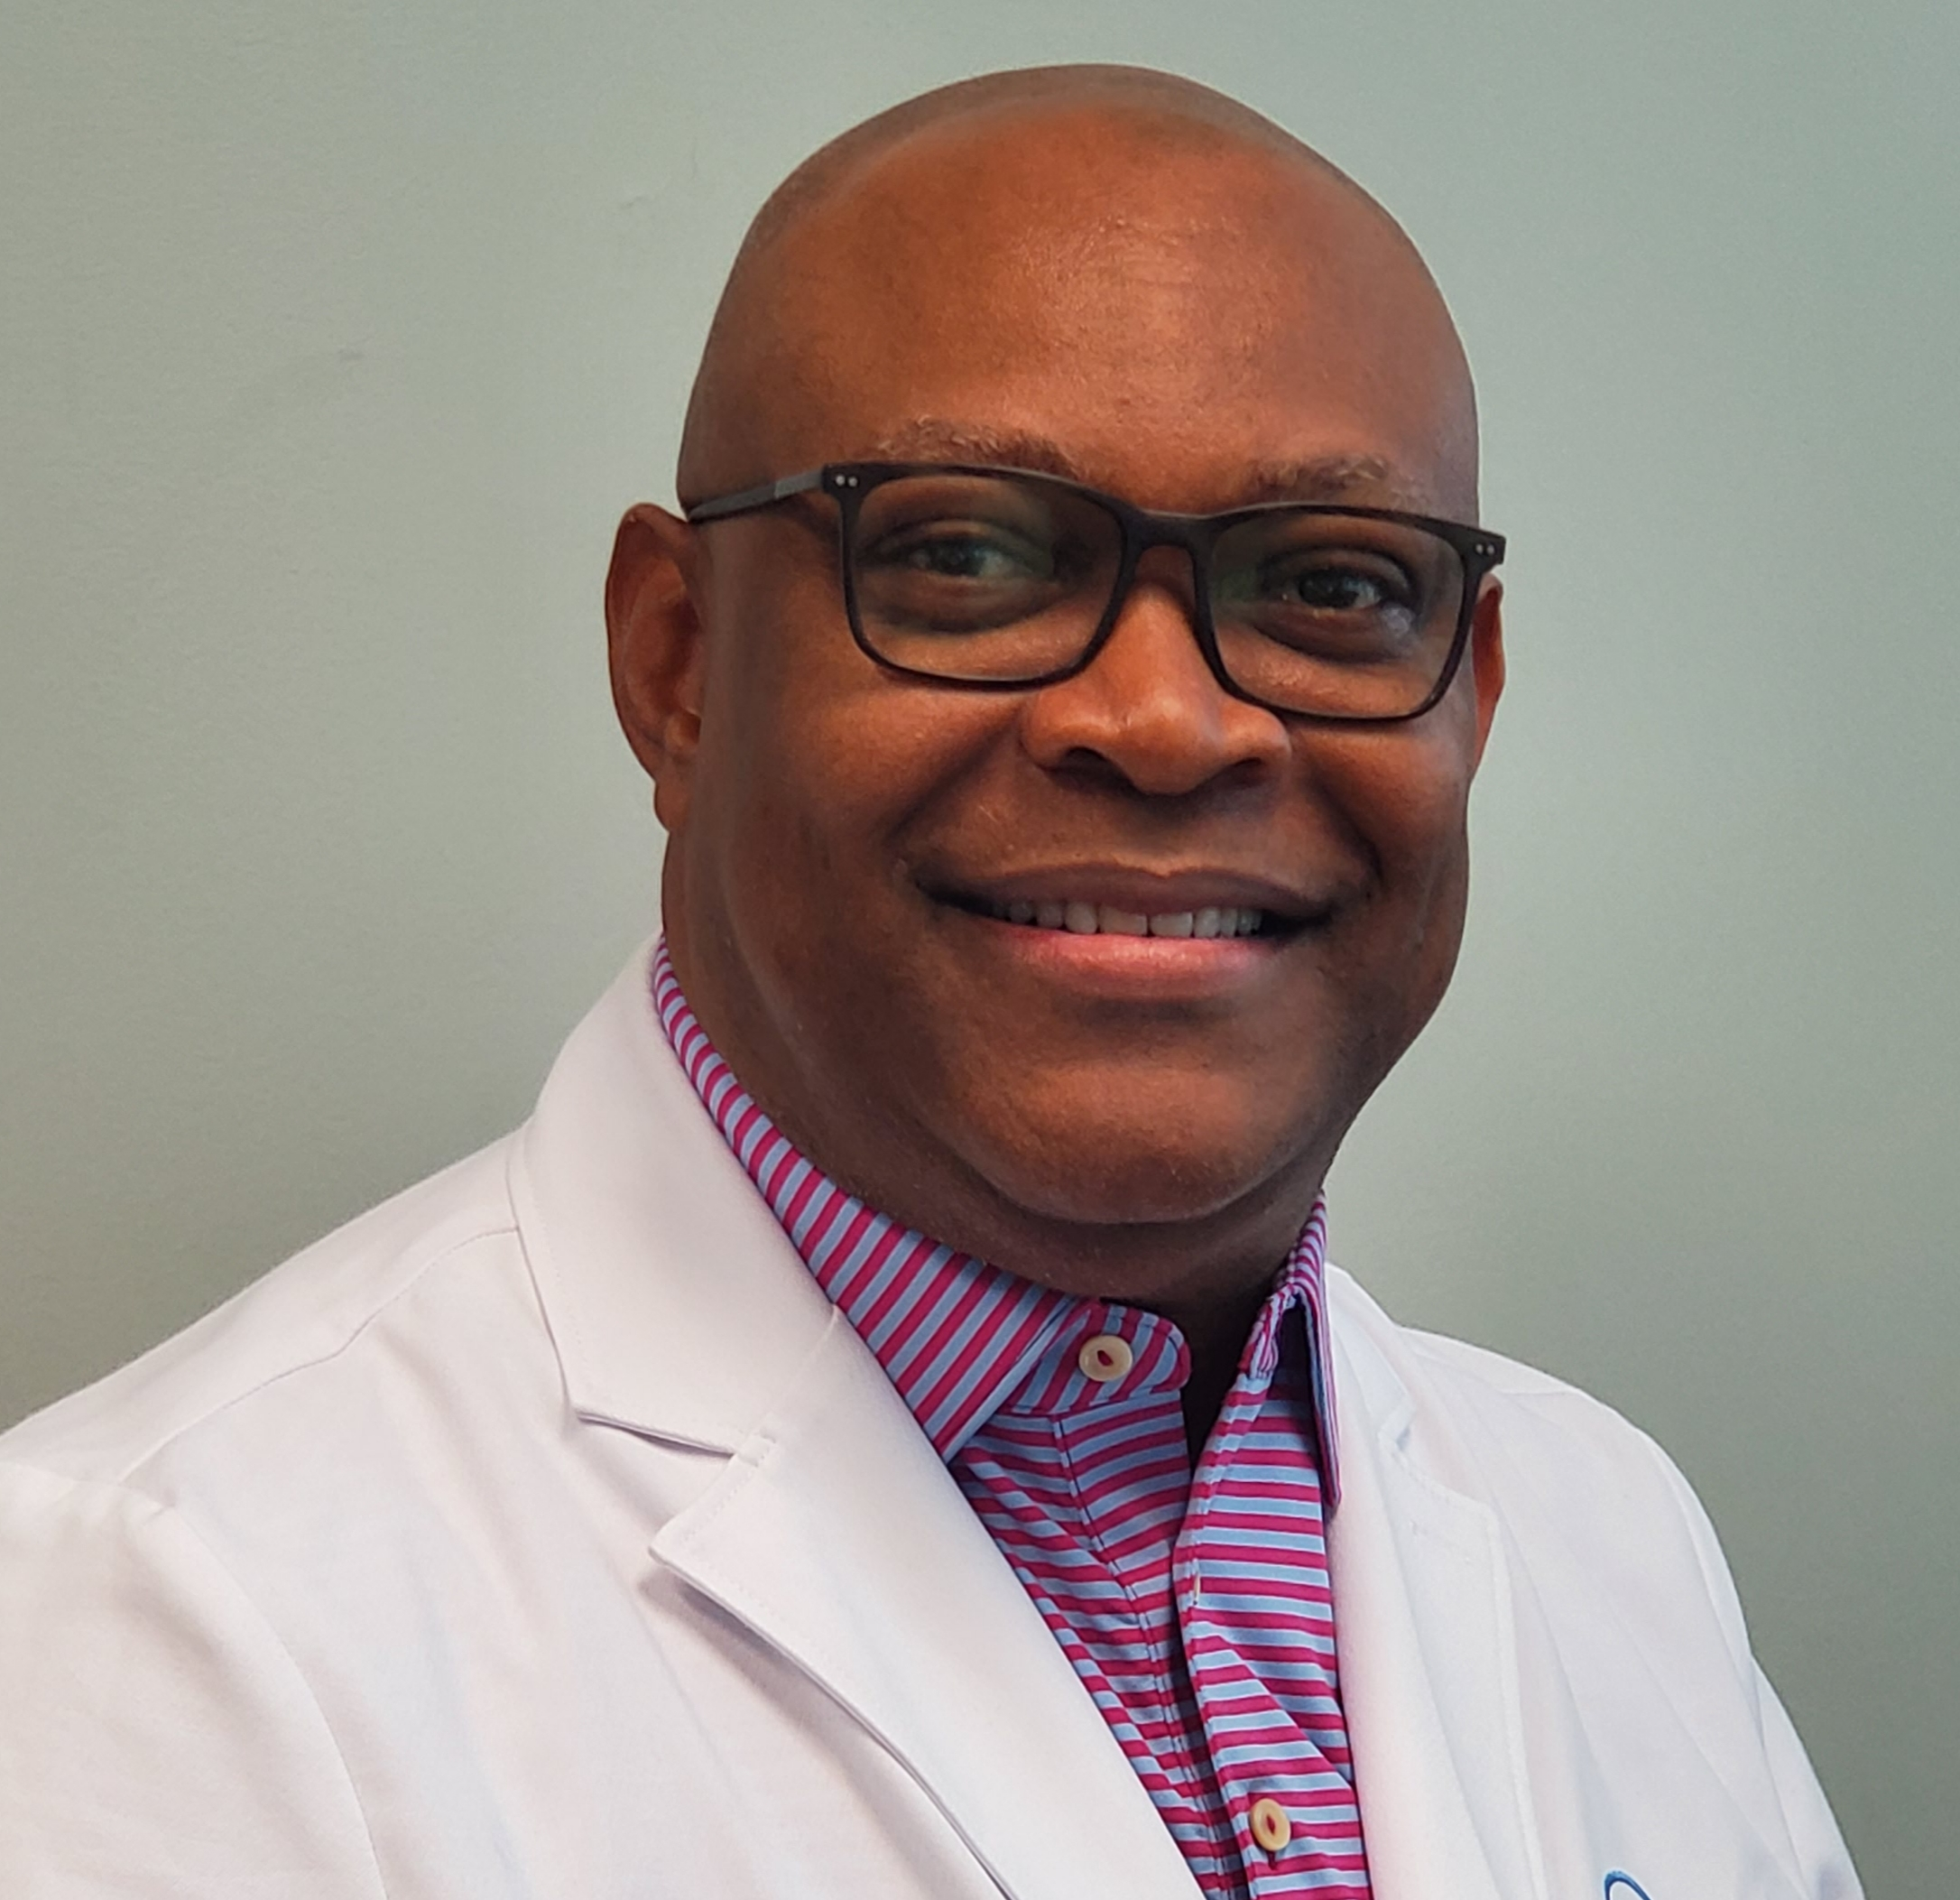 Dr. Anthony Ricketts